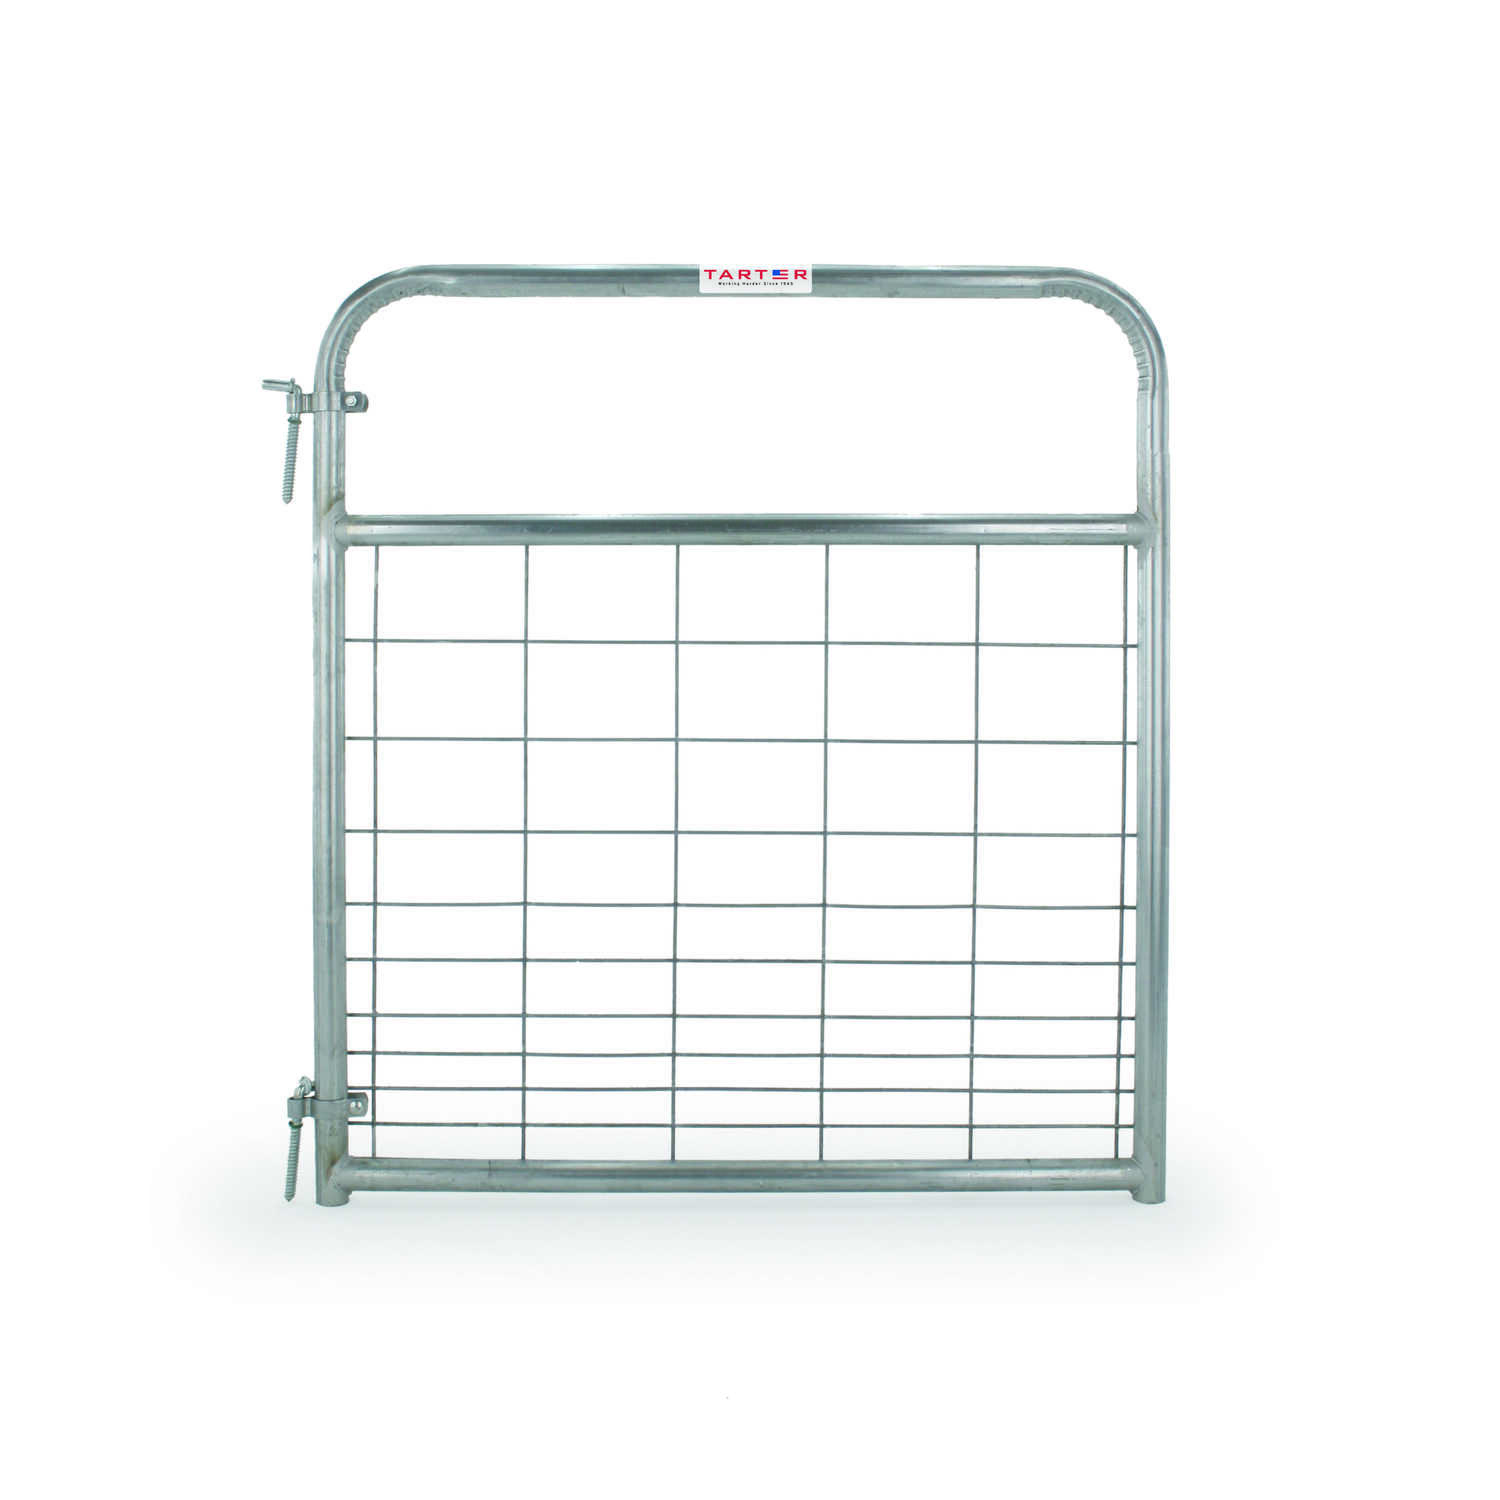 Tarter  50 in. H x 1.75 in. W Galvanized Steel  Wire Filled Gate